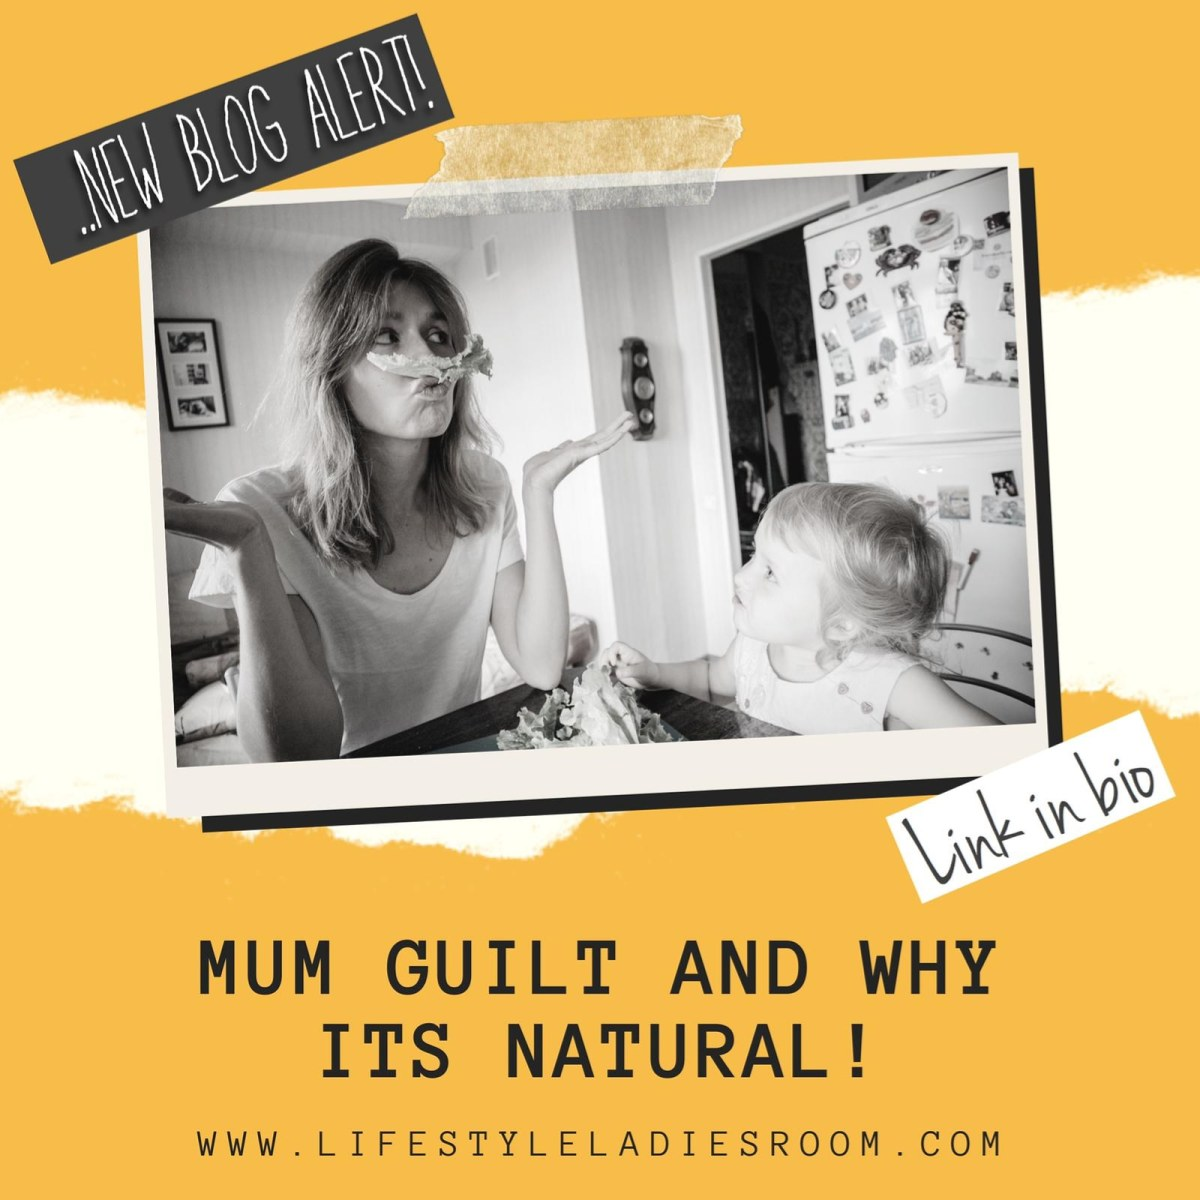 Mum Guilt and Why itsNatural